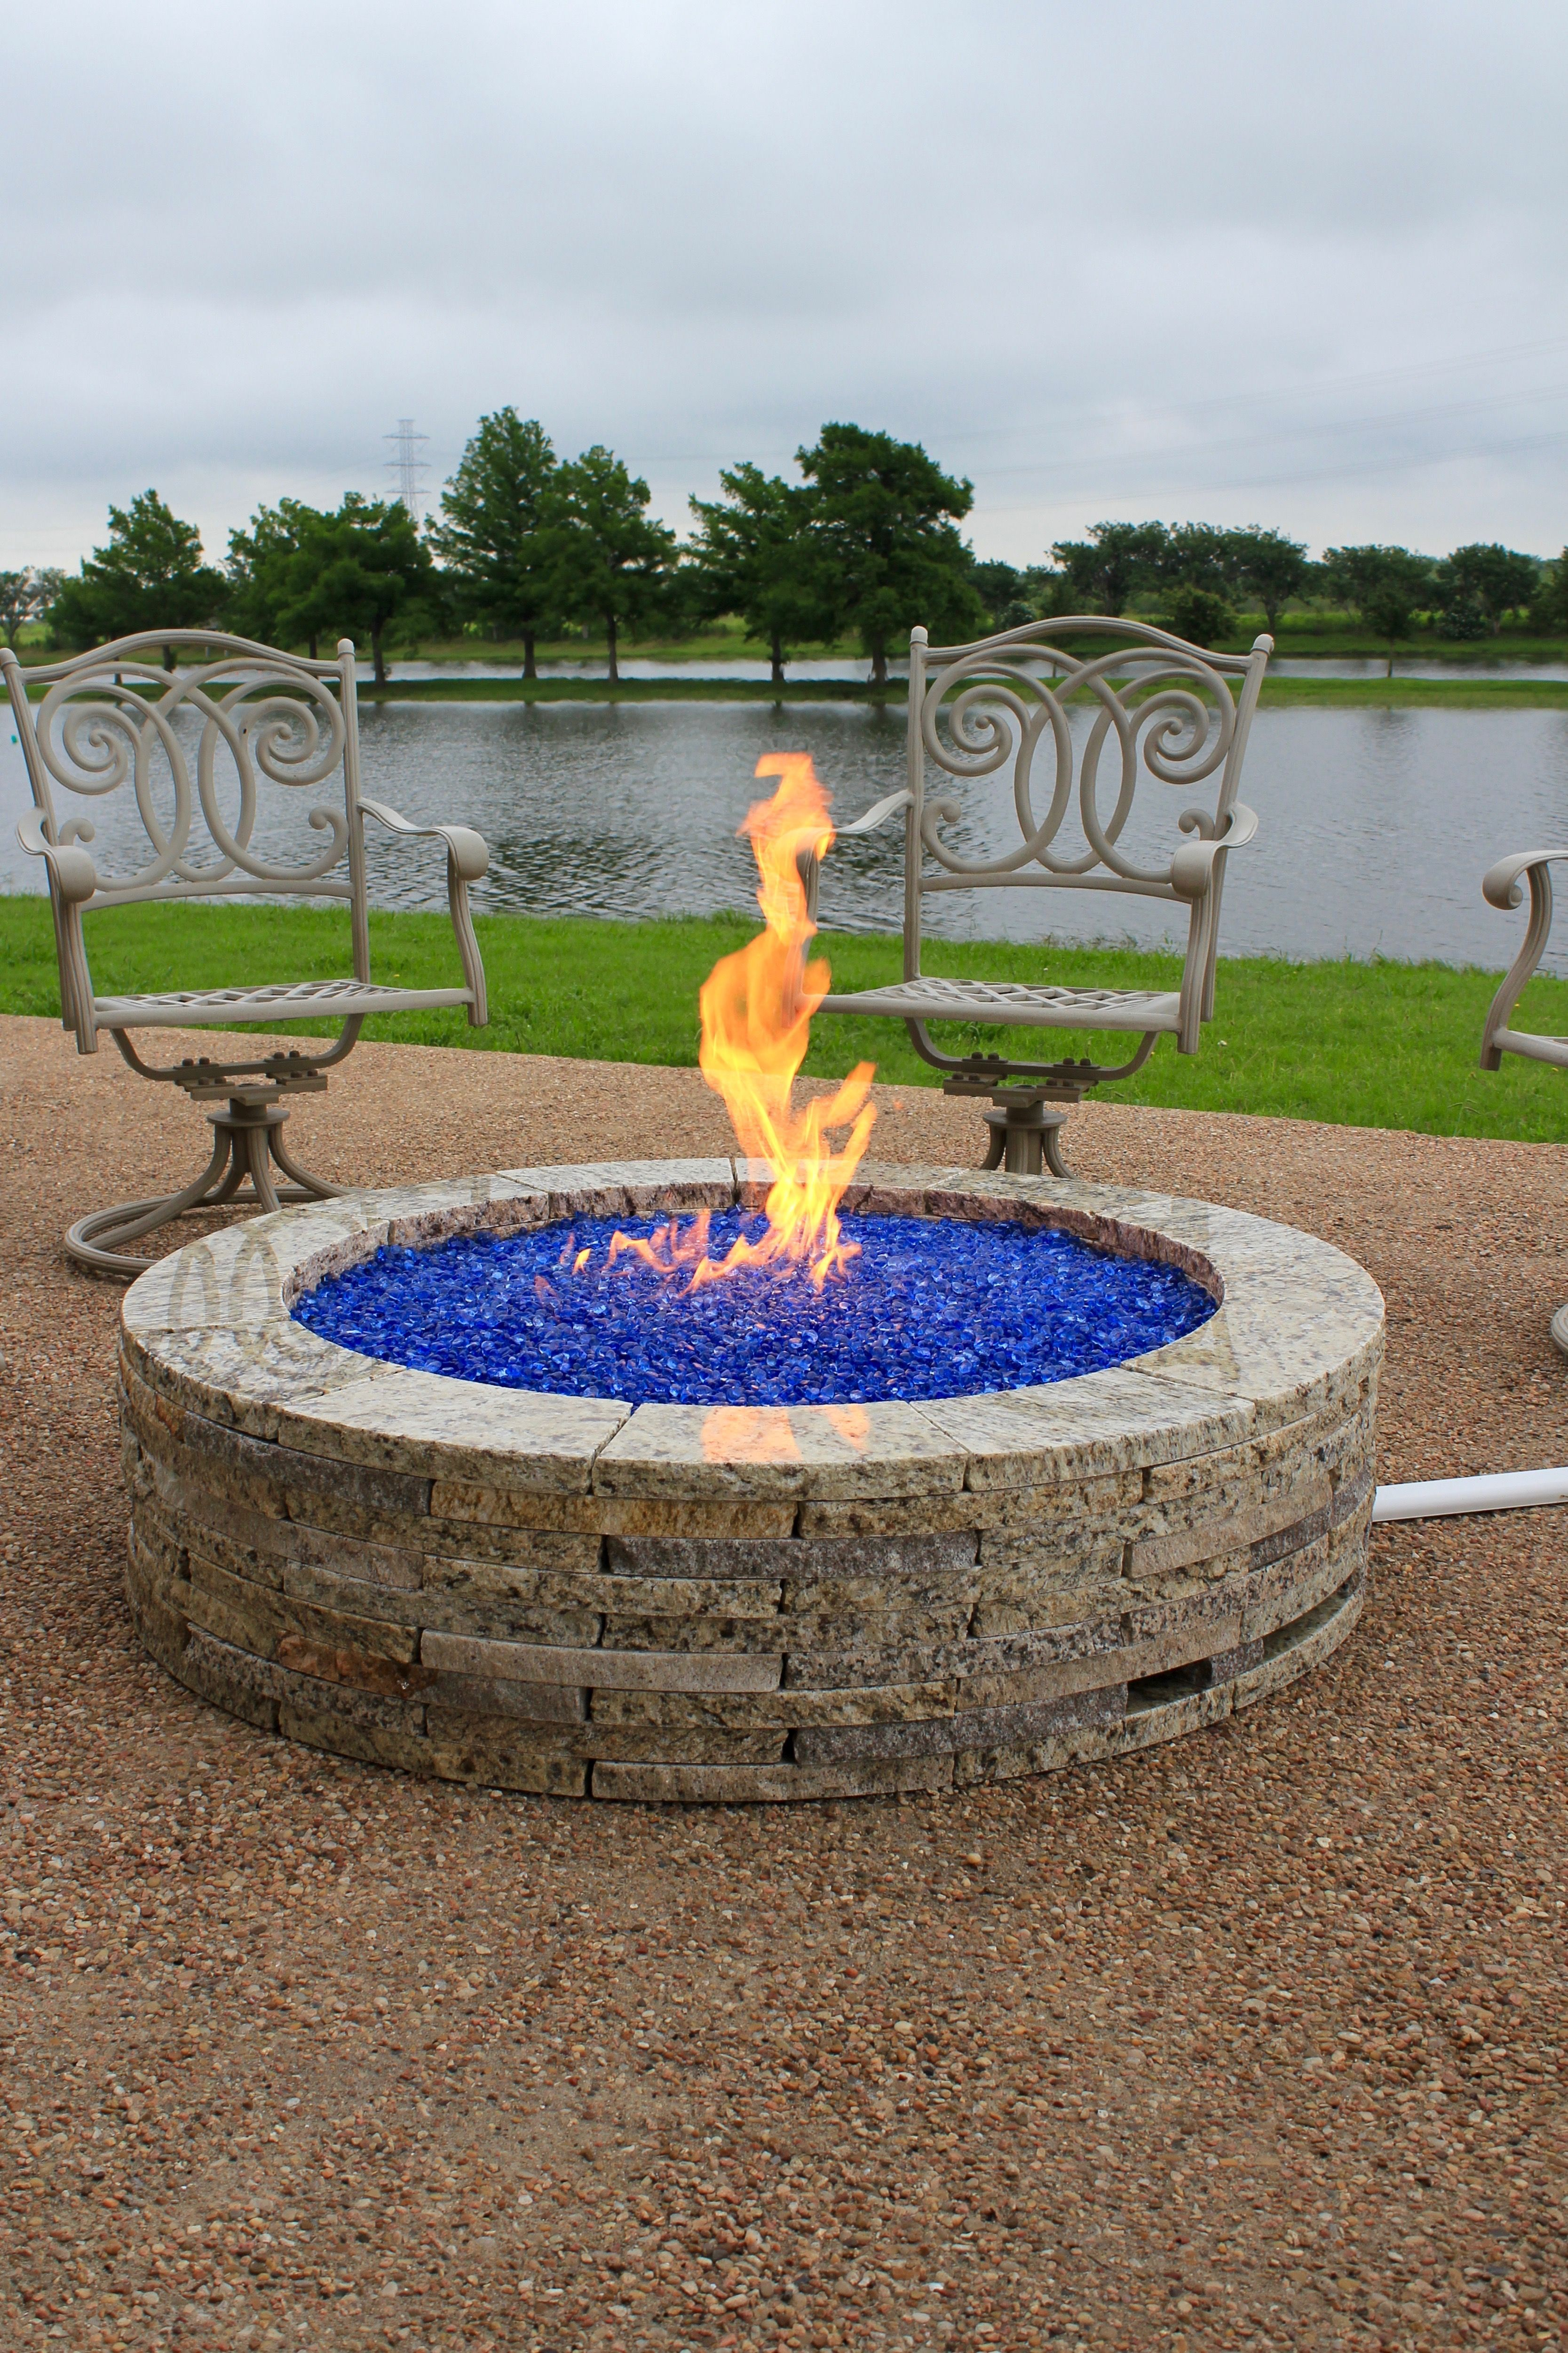 48 Granite Fire Pit With 20lb Propane Tank Conversion Kit And Sky intended for sizing 3334 X 5002